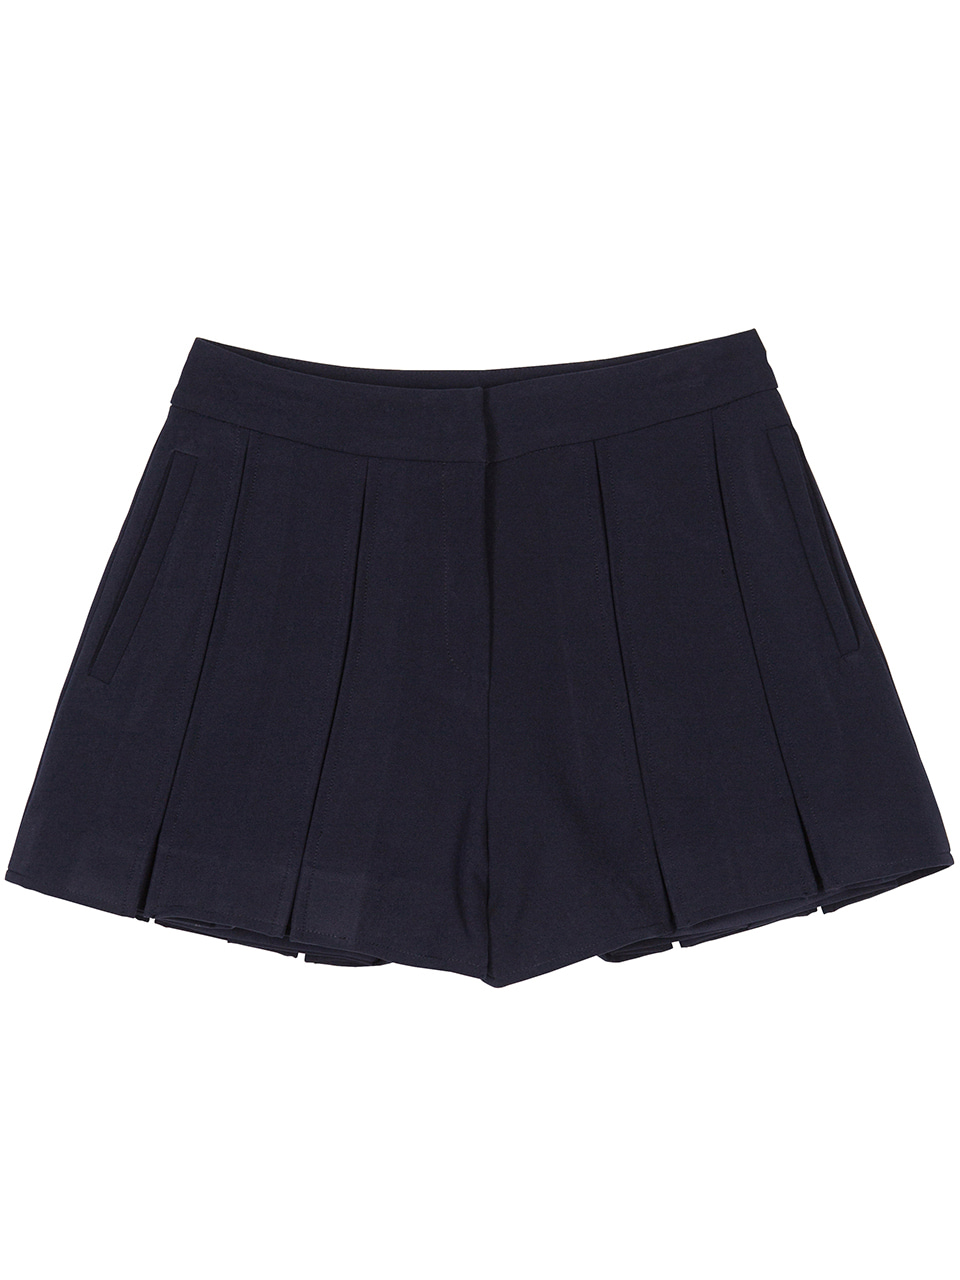 Slot Hem Shorts - navy